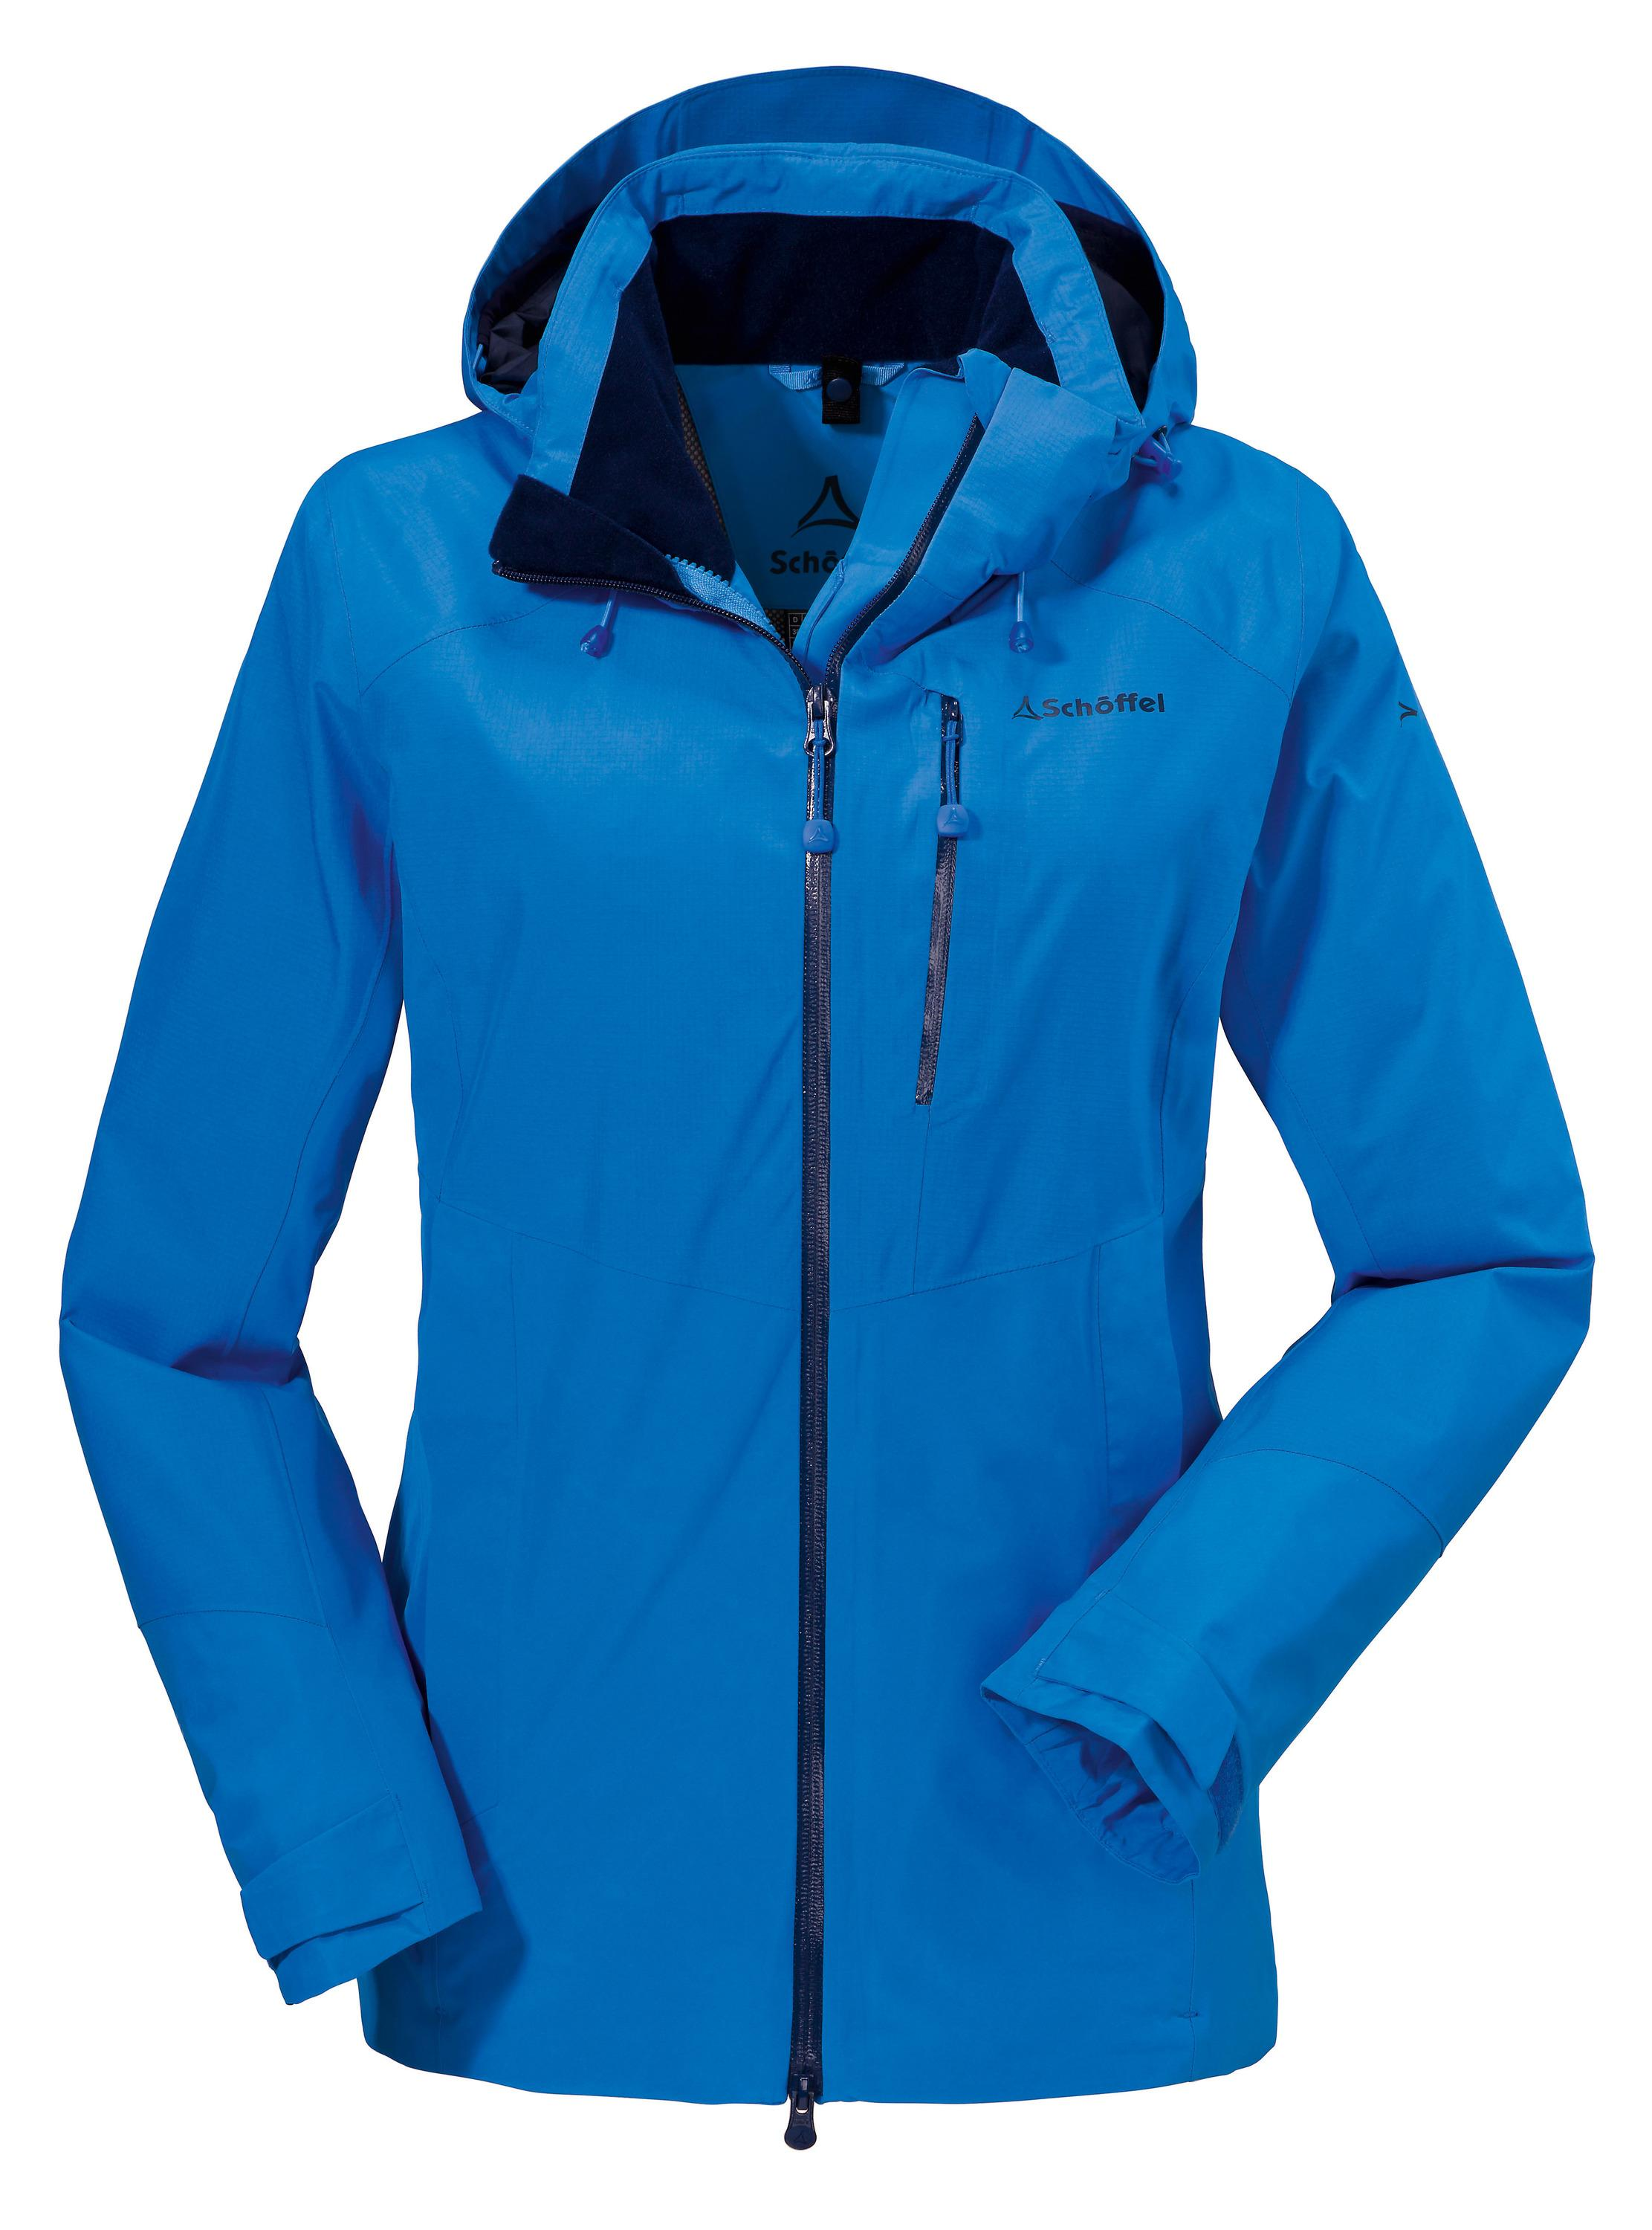 Outdoorjacke damen blau